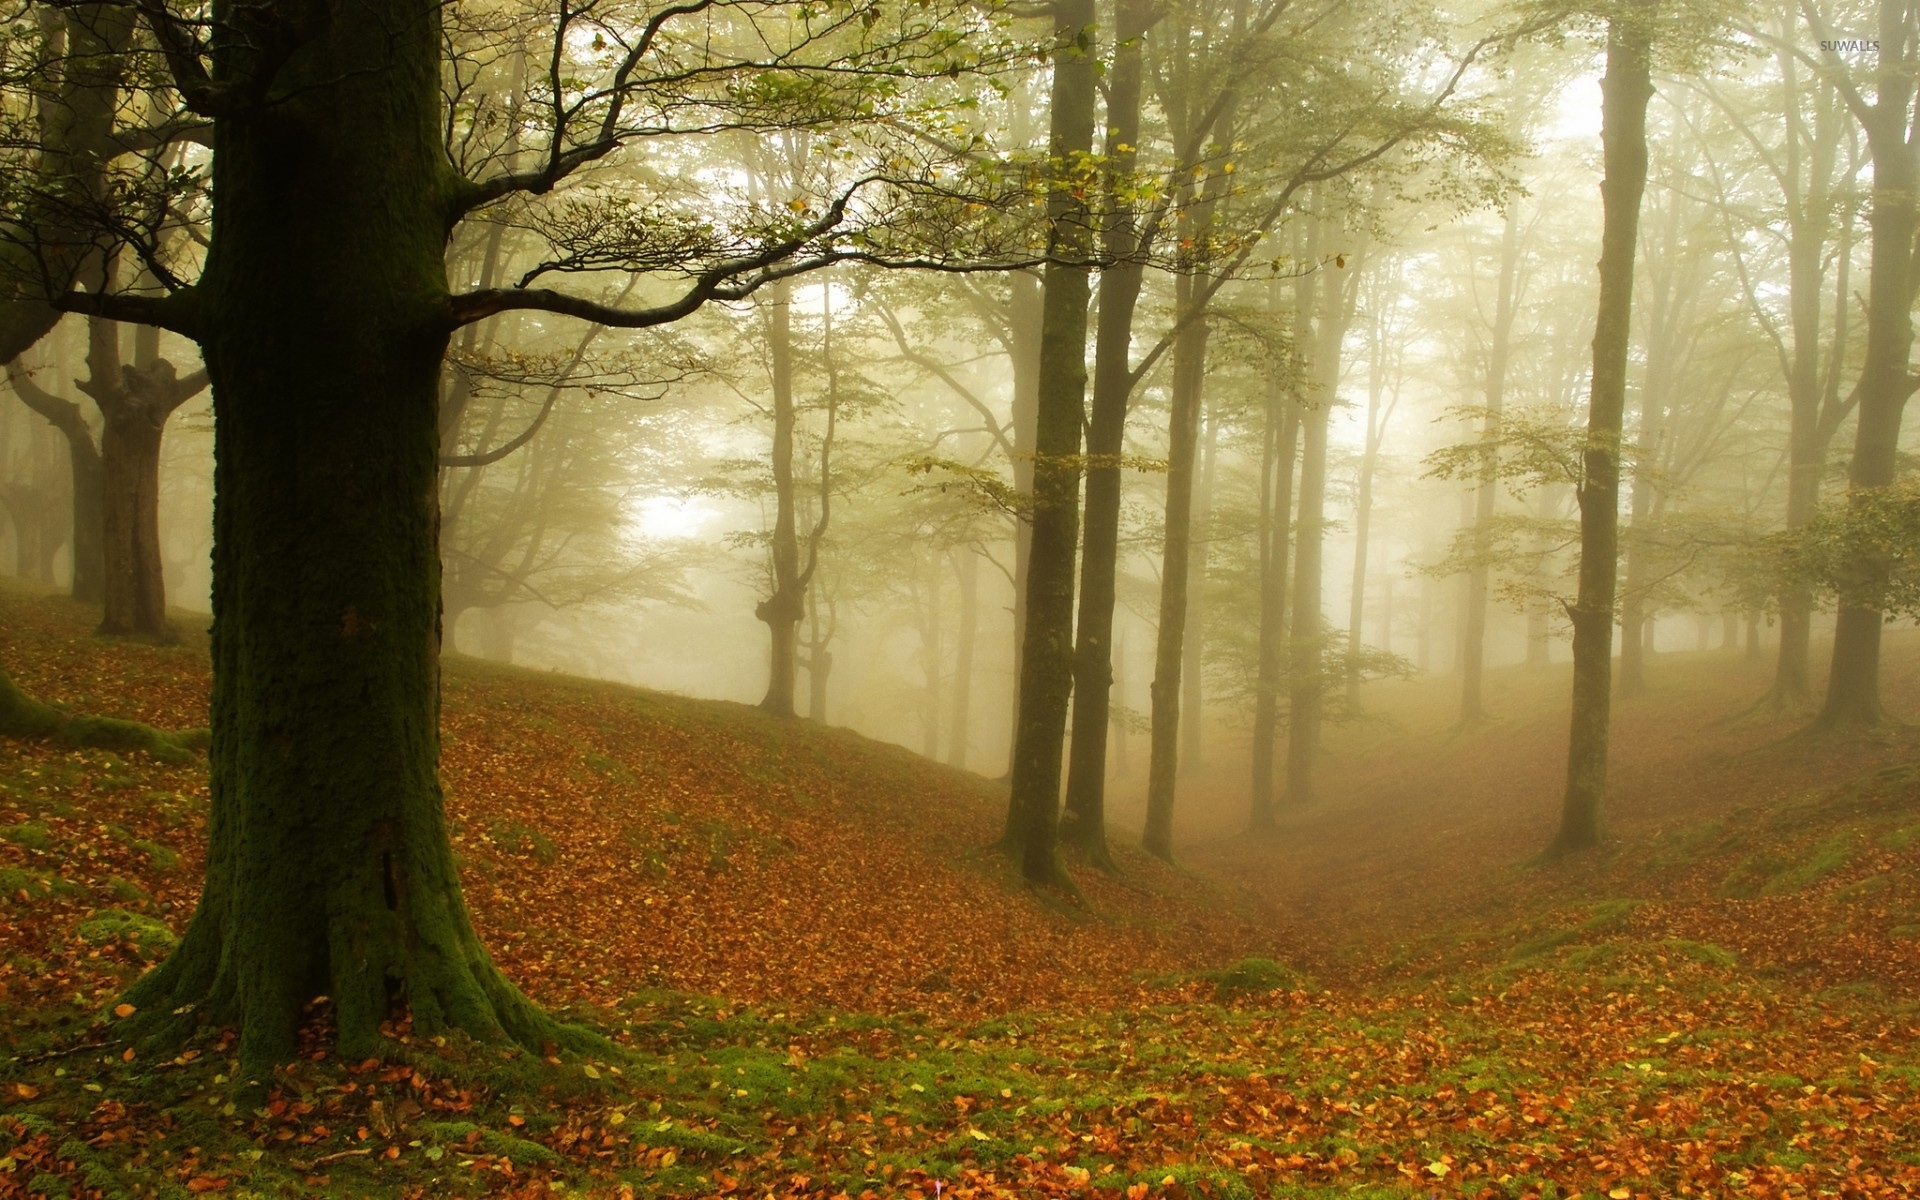 Foggy autumn forest 4 wallpaper - Nature wallpapers - #35383